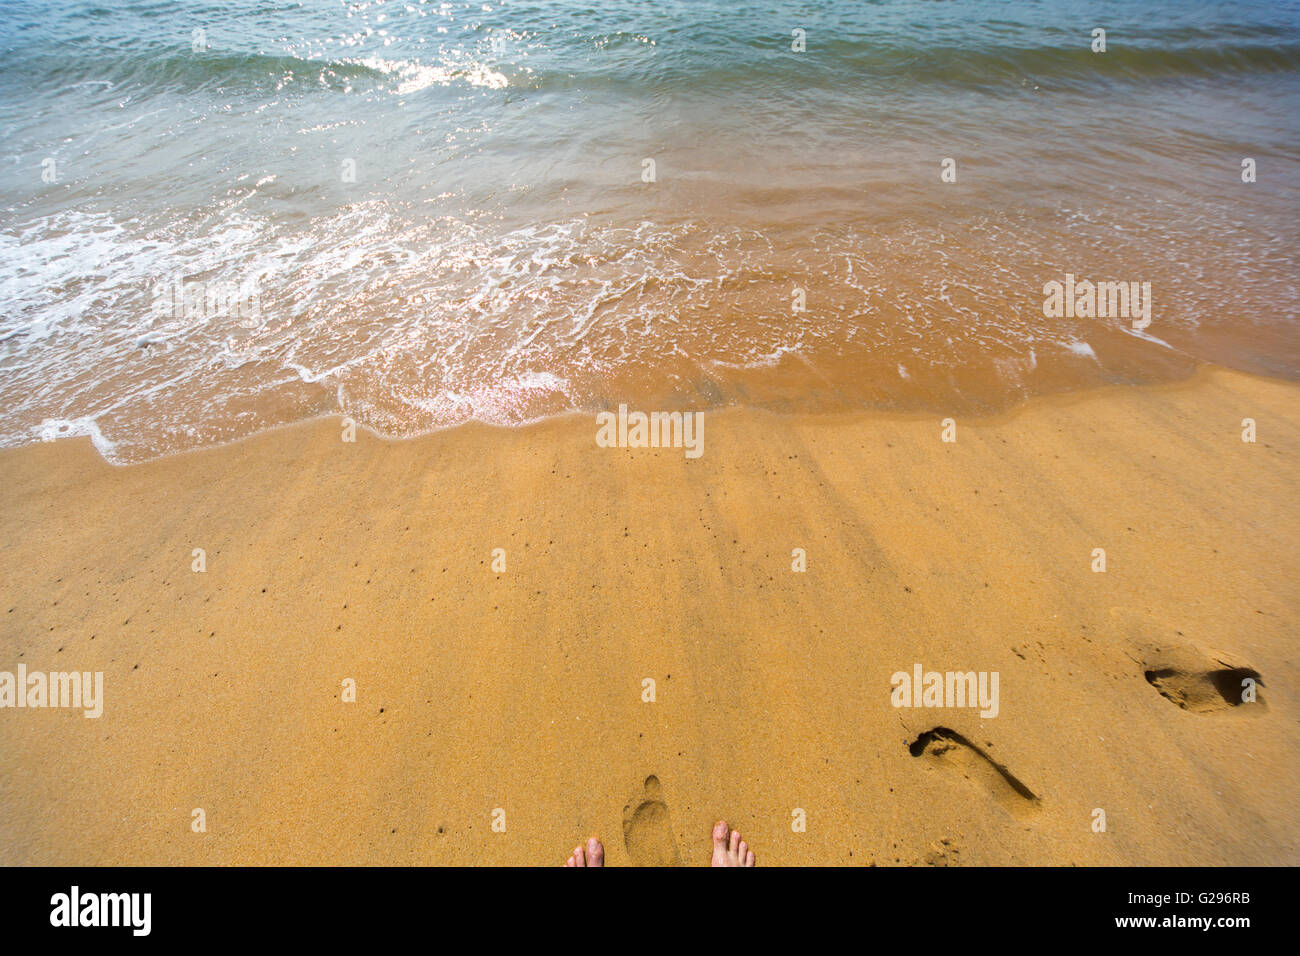 Footprints and human feet on the beach - Stock Image